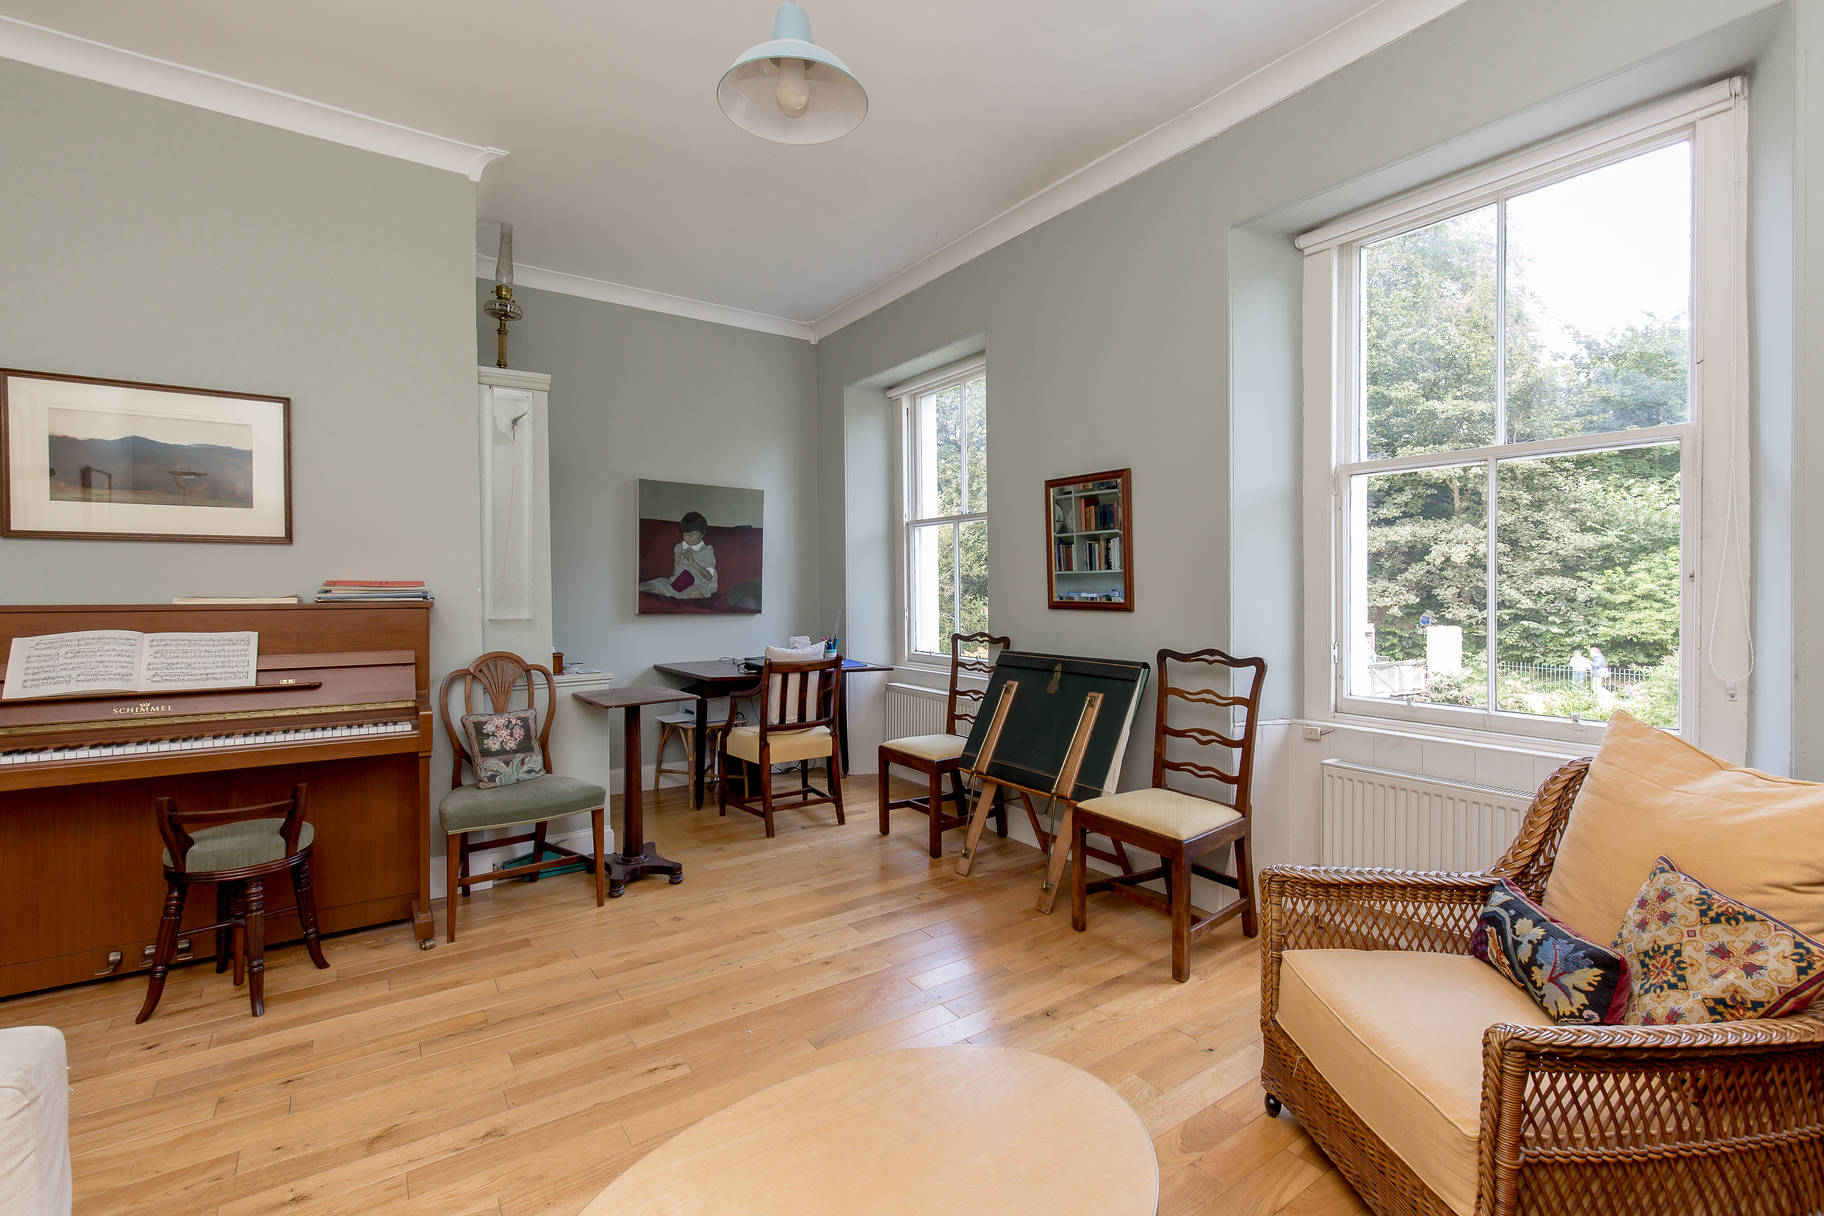 2 Glenogle Terrace, Stockbridge, Edinburgh, EH3 5HS